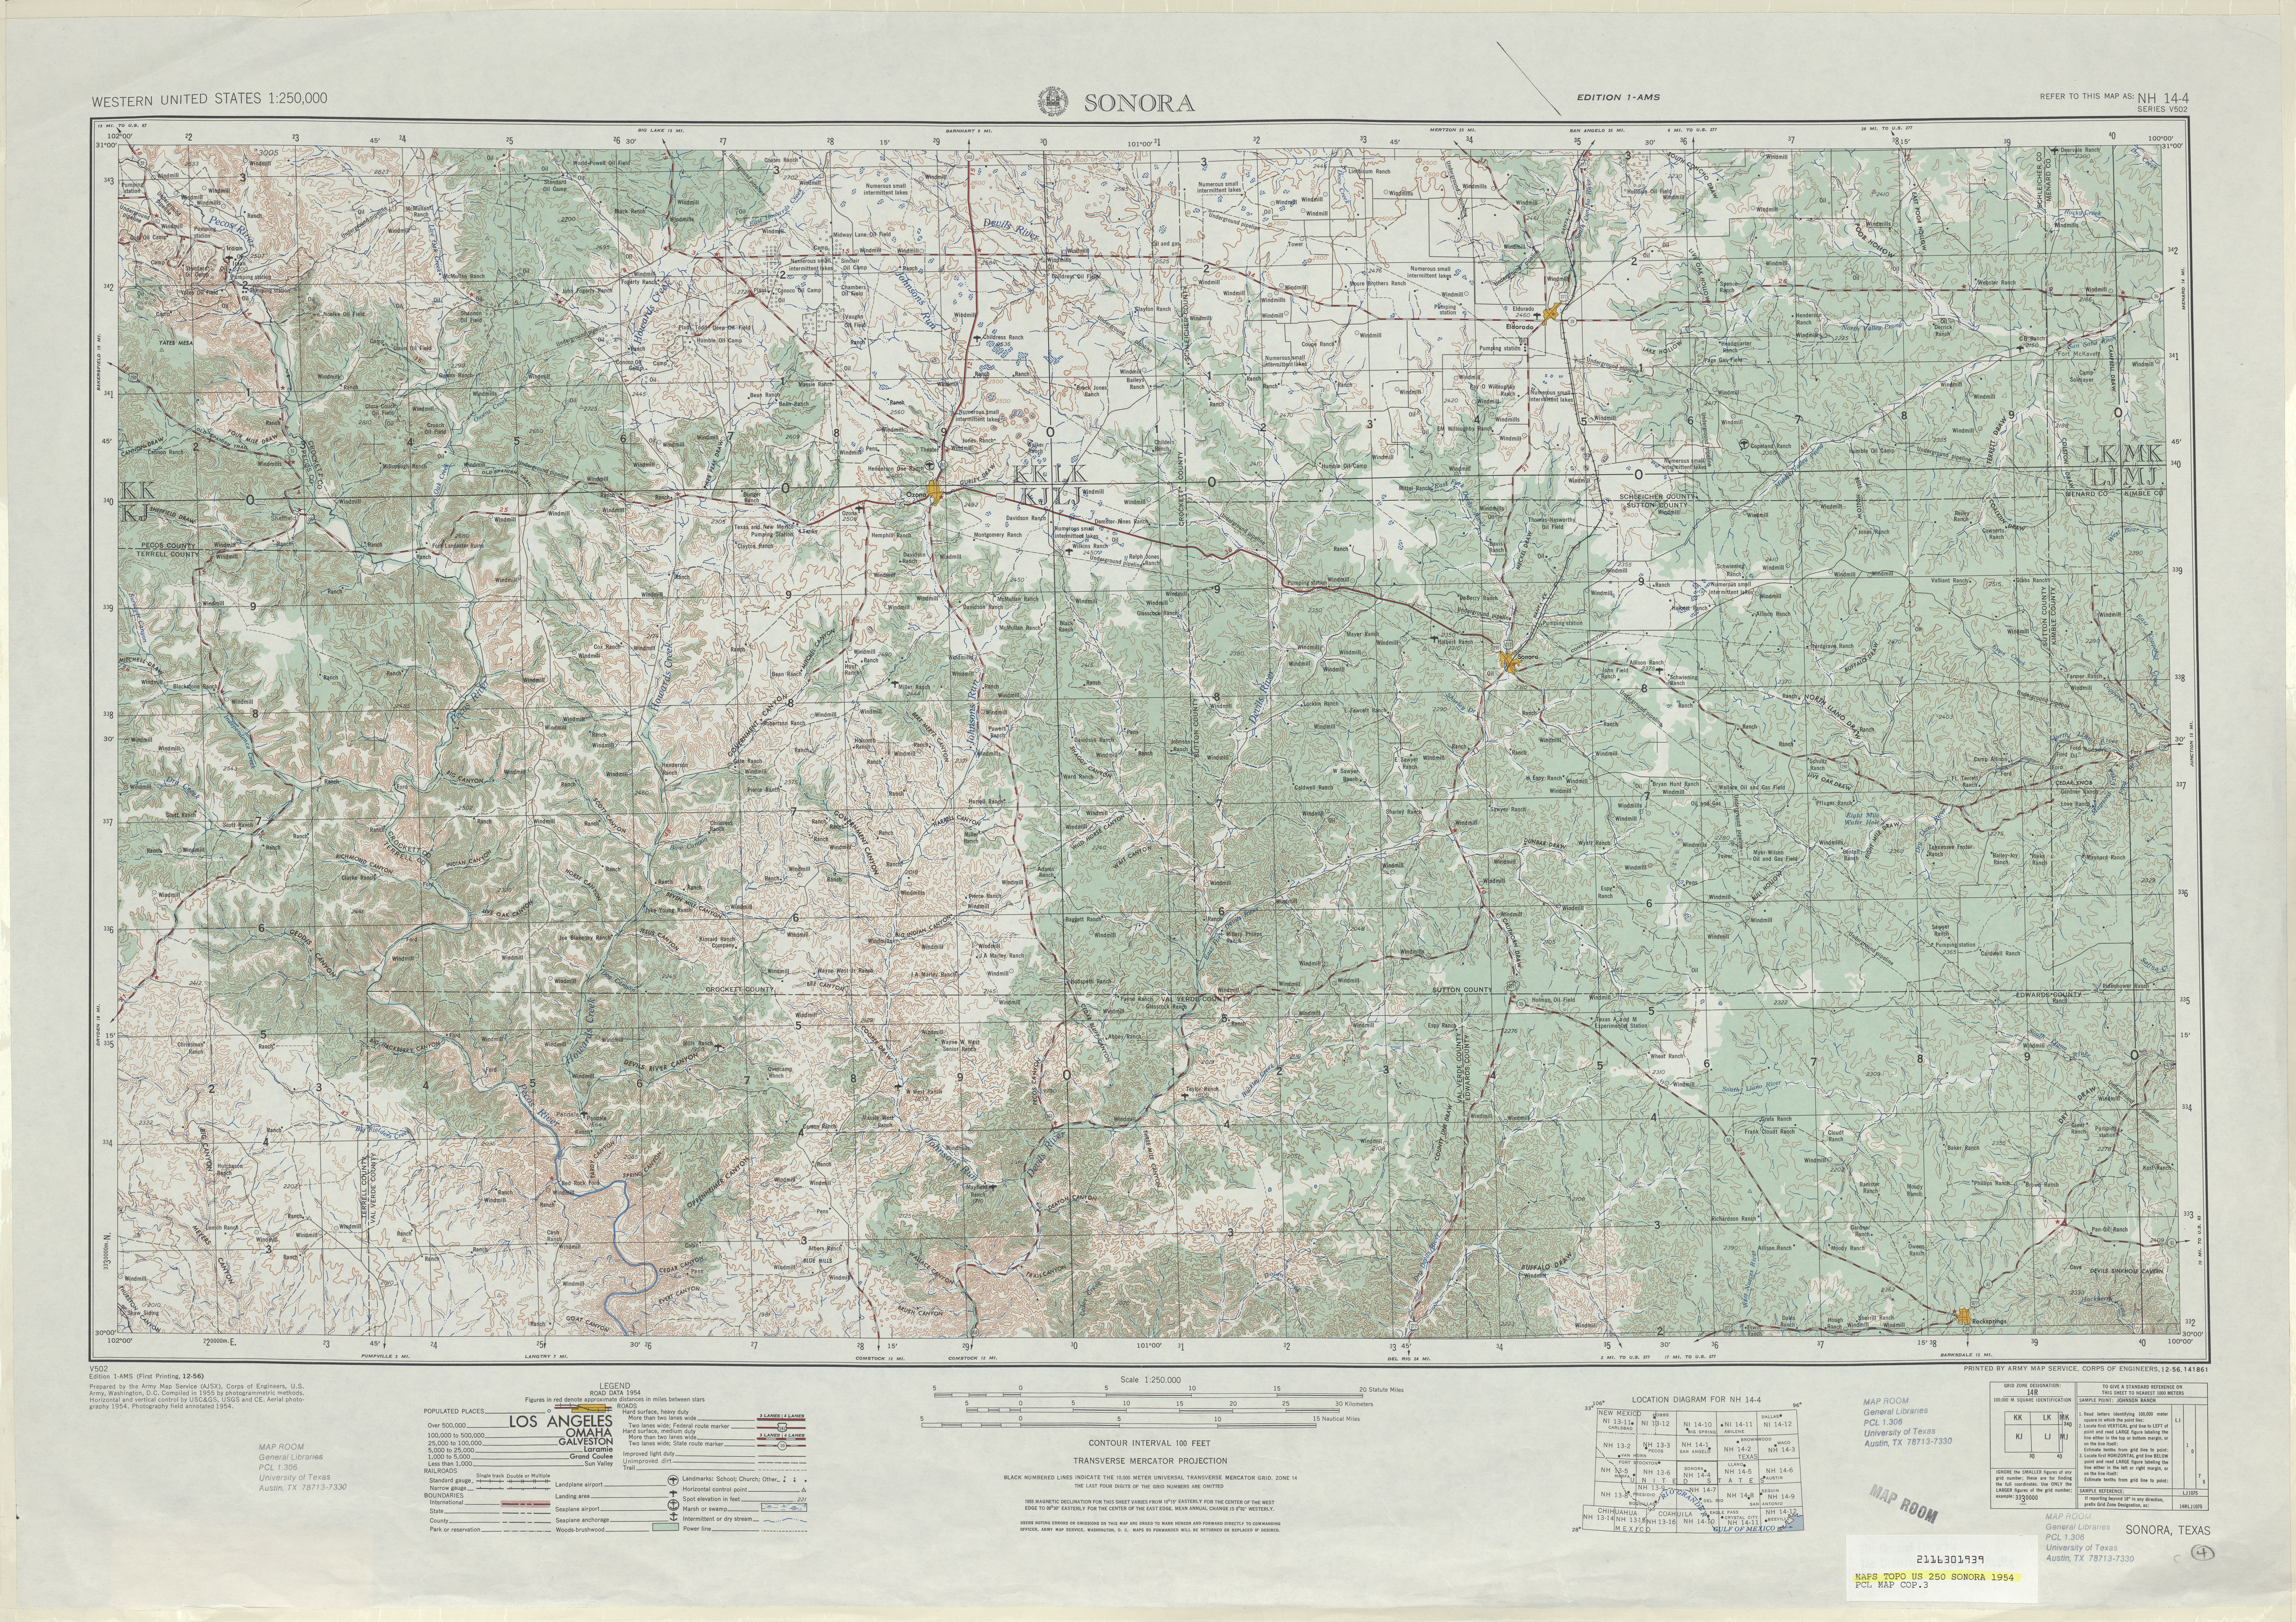 Sonora Topographic Map Sheet, United States 1954